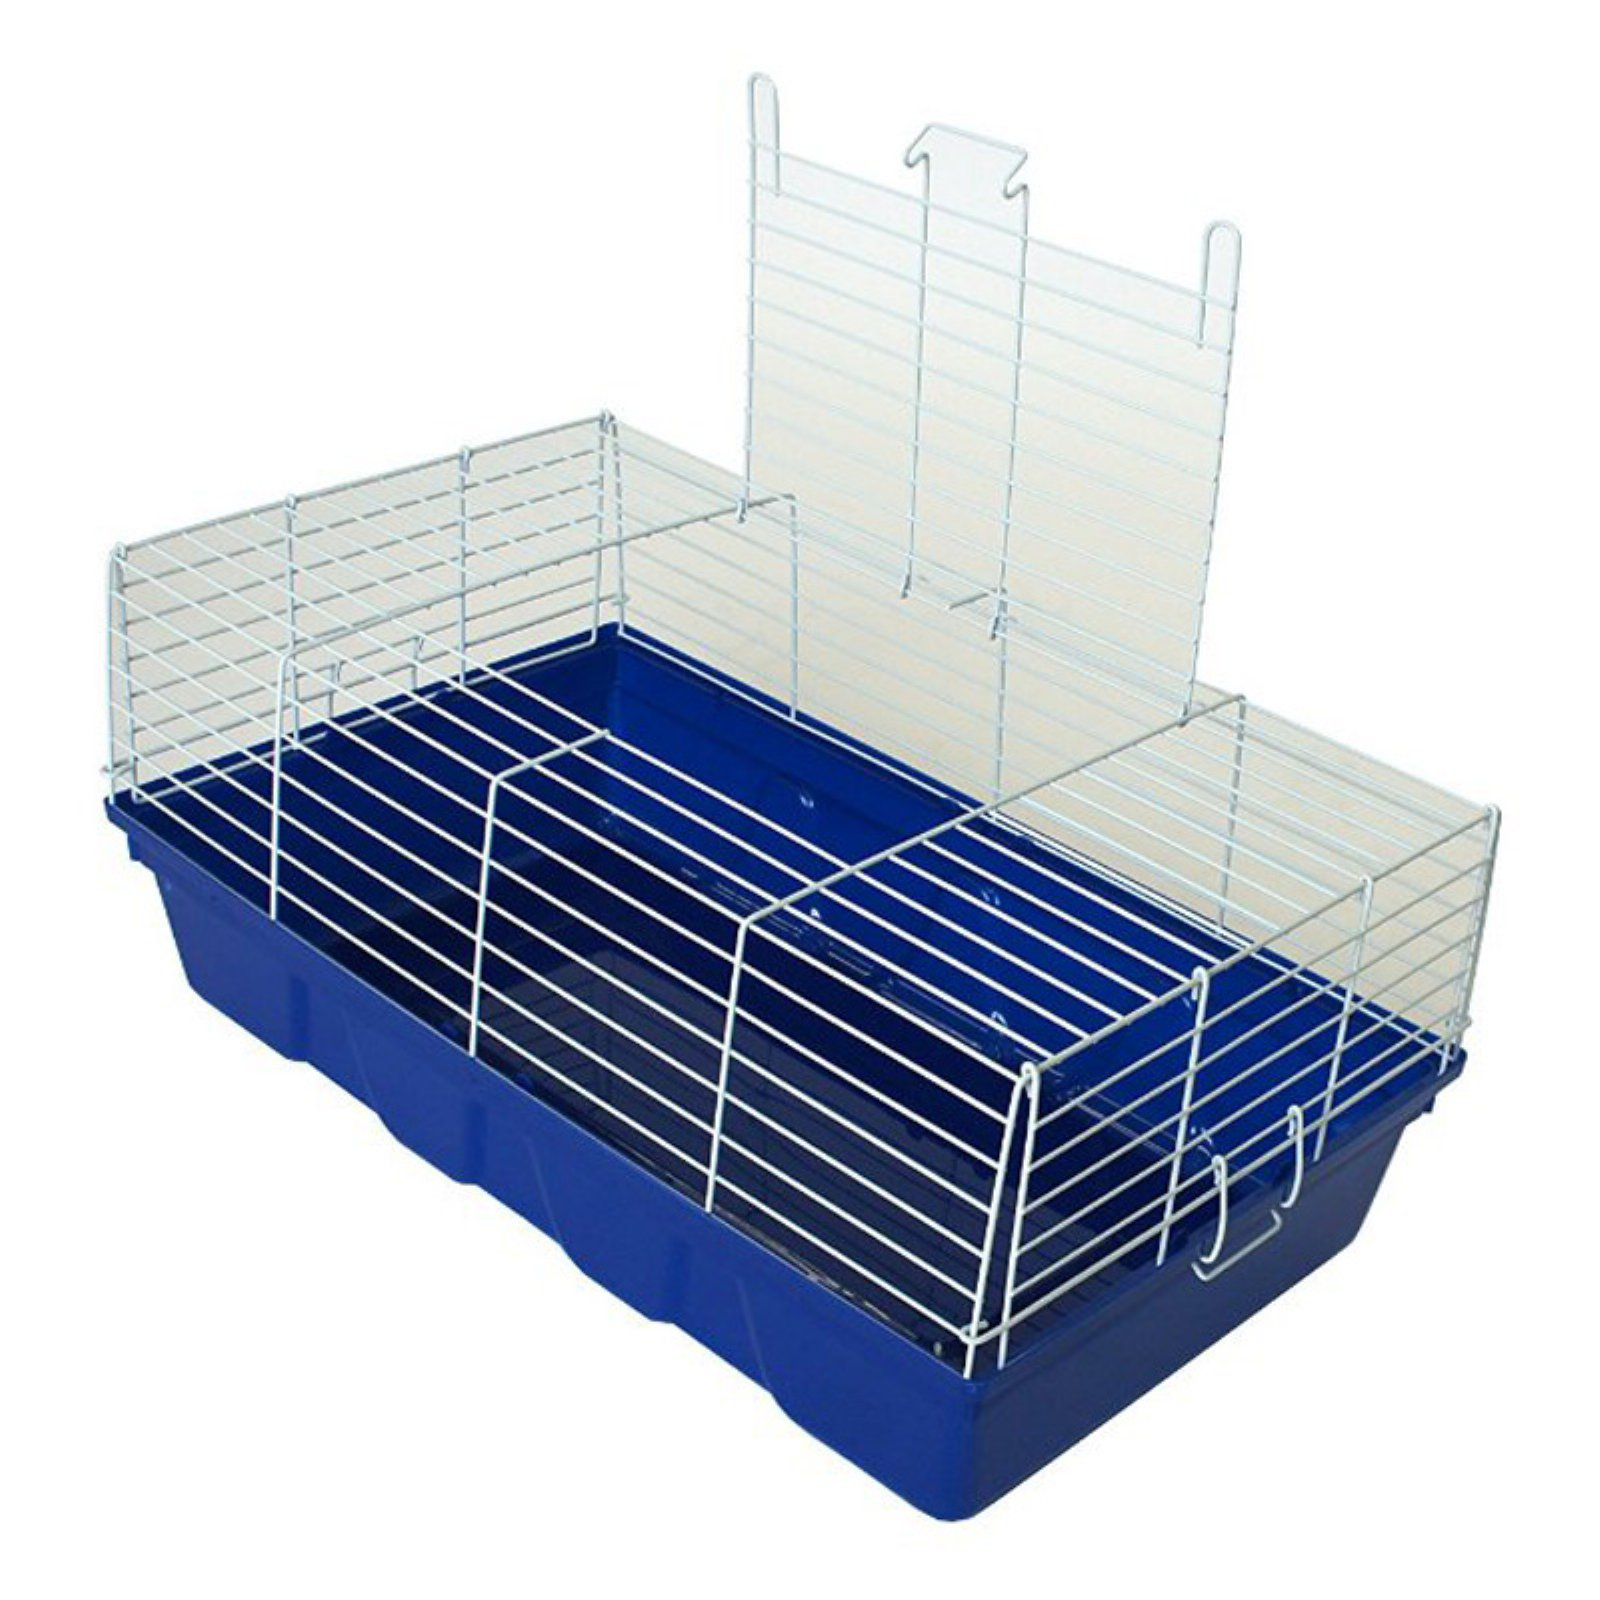 YML Small Animal Cage - Blue